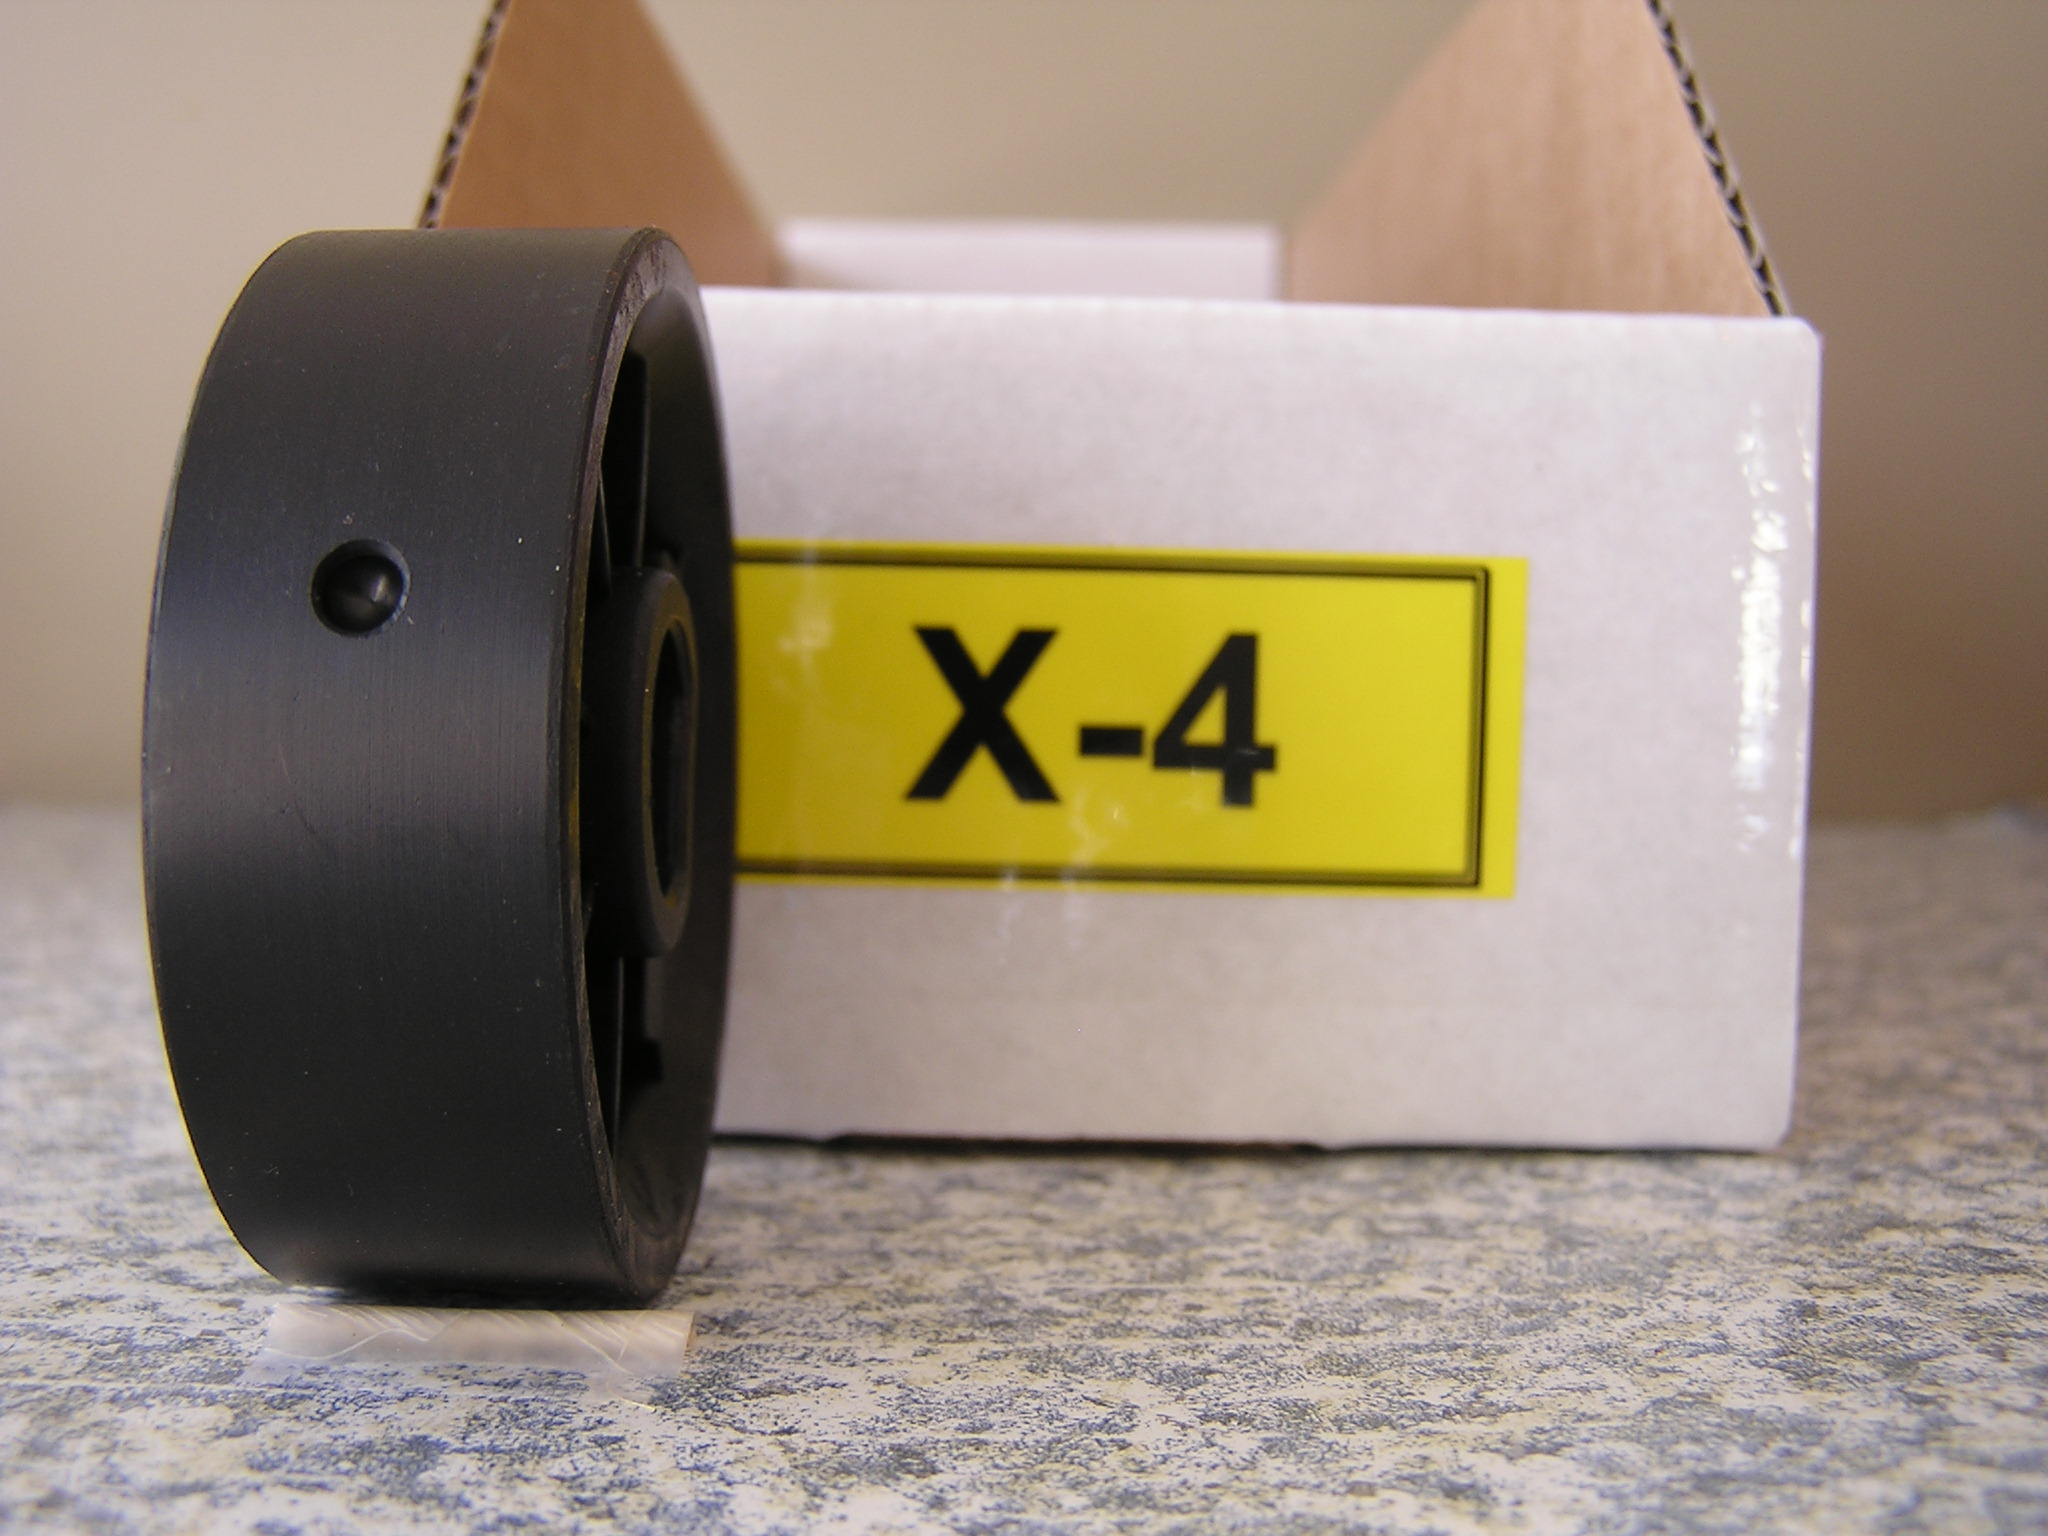 X-4 Roller for Jang Seeder, 4 mm Slot, 4 Slots on the Roller